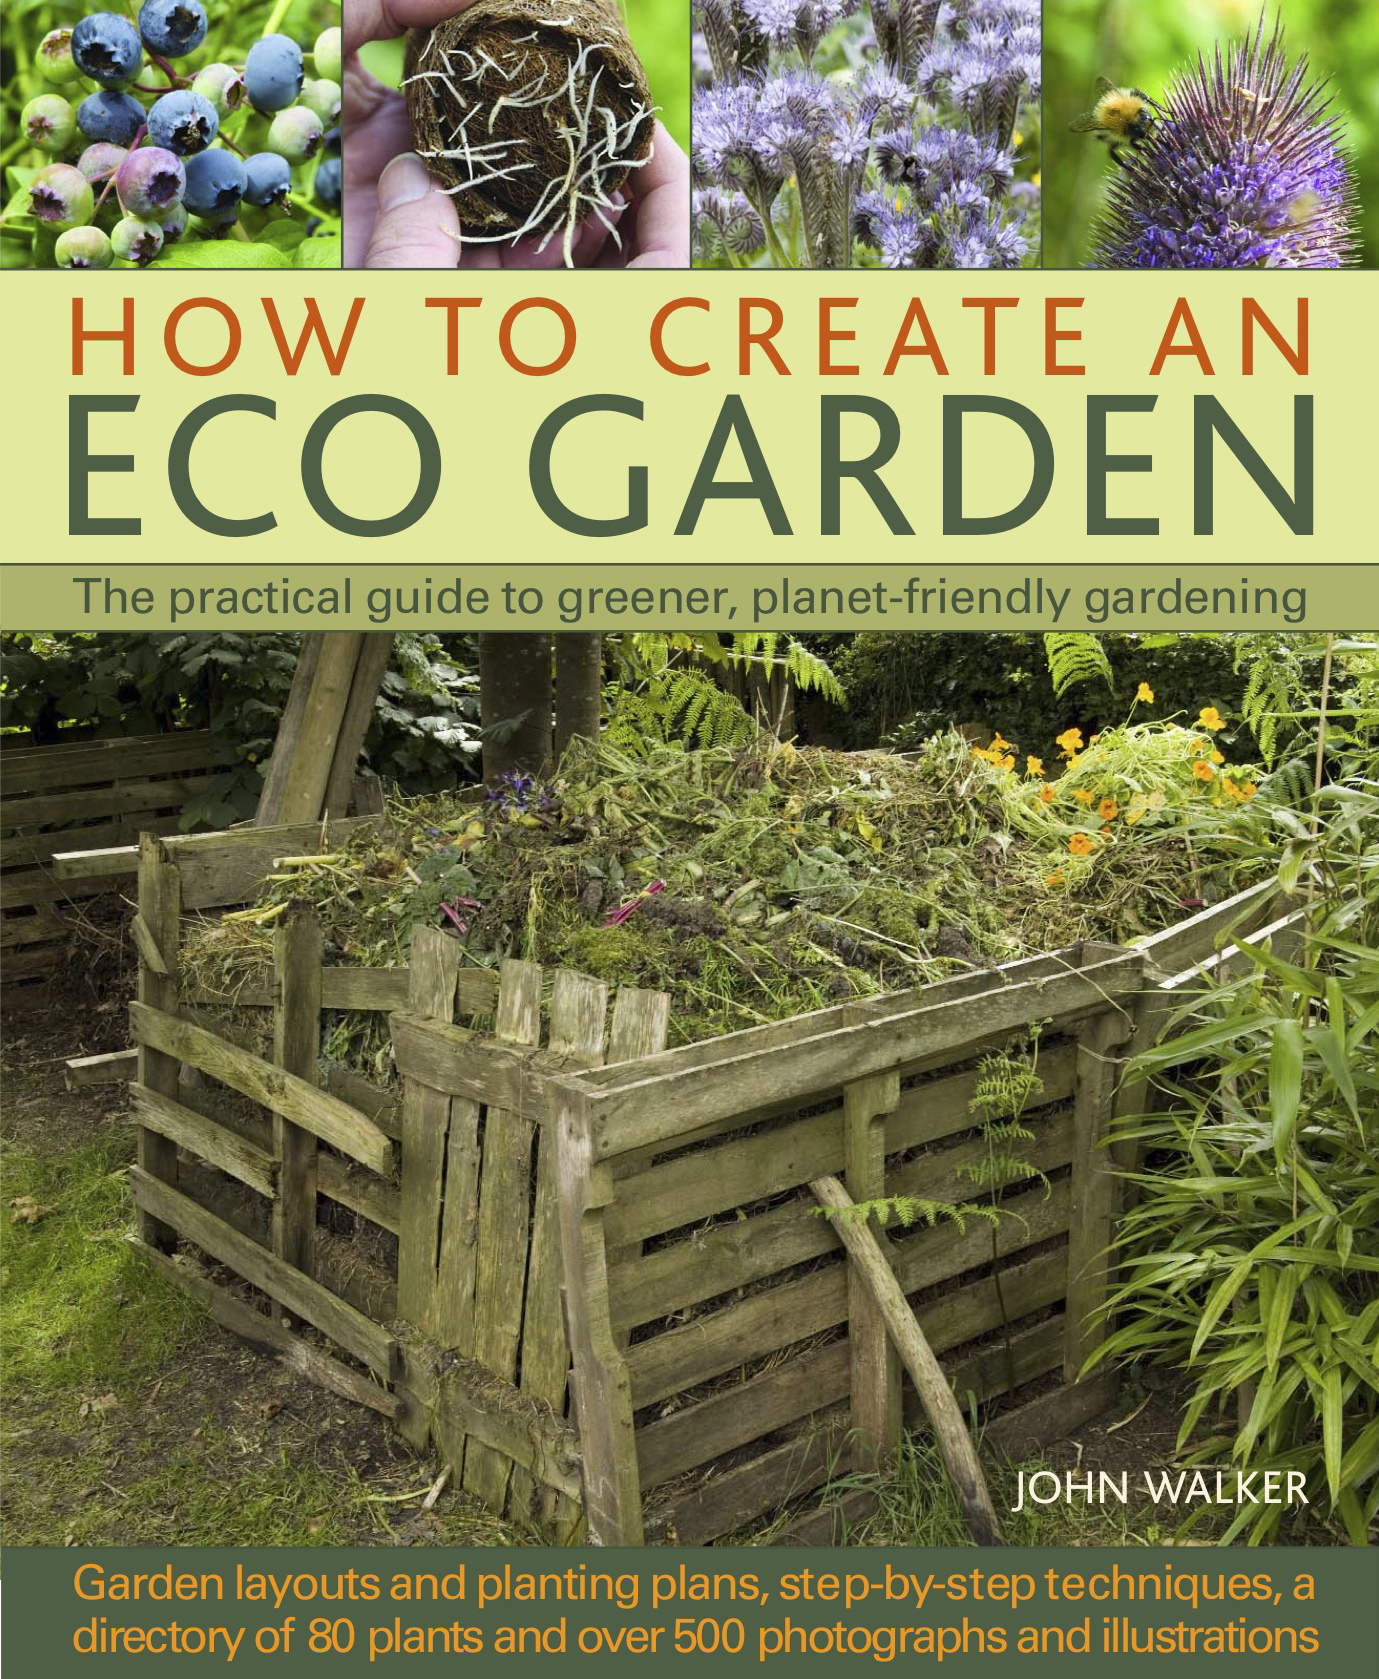 how-to-create-an-eco-garden-the-practical-guide-to-greener-planet-friendly-gardening